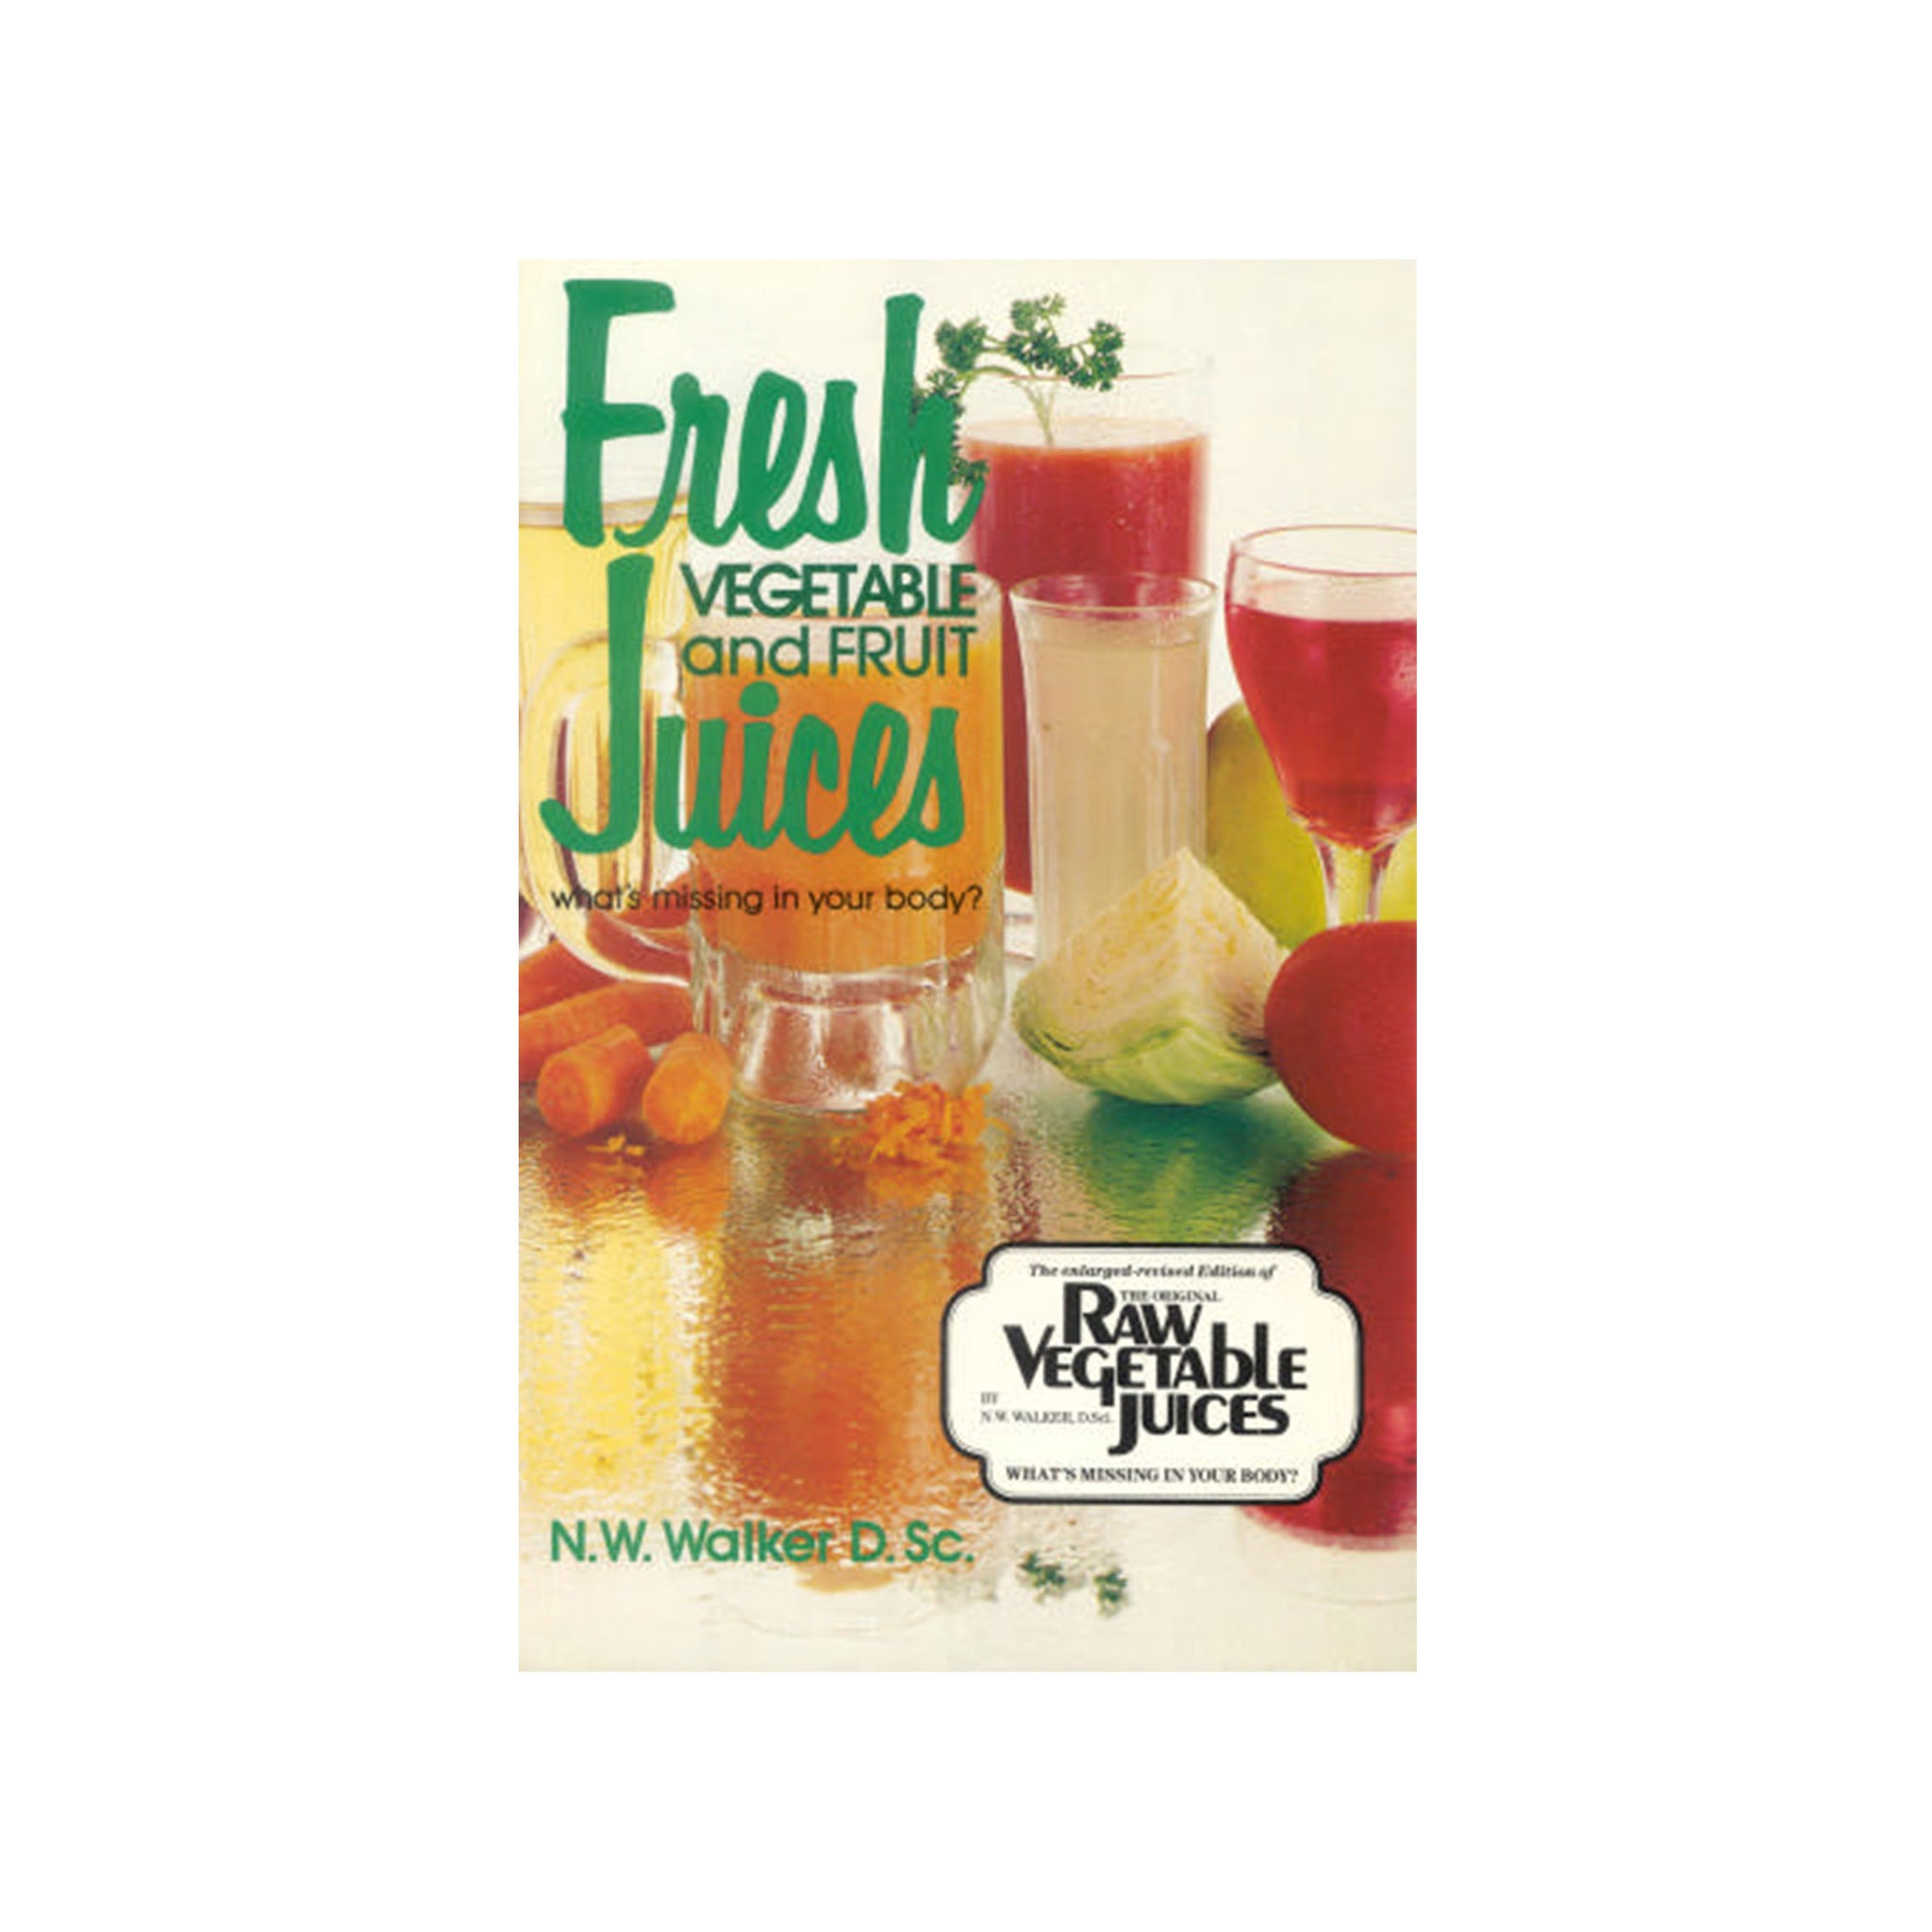 Foods Alive - Fresh Vegetable and Fruit Juices book by N.W. Walker D. Sc.